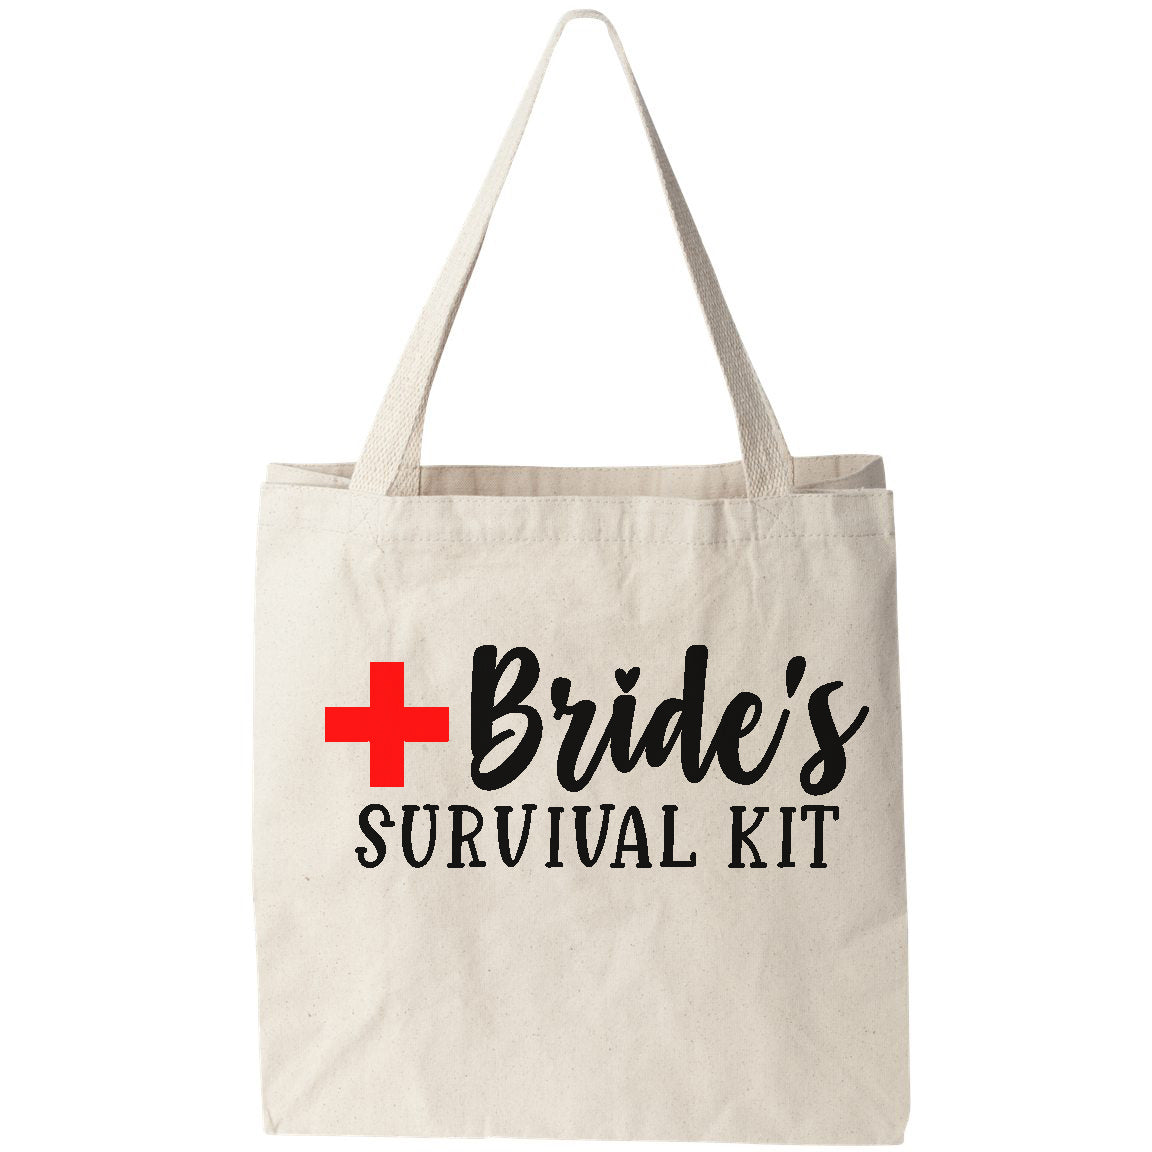 Bride's Survival Kit Tote